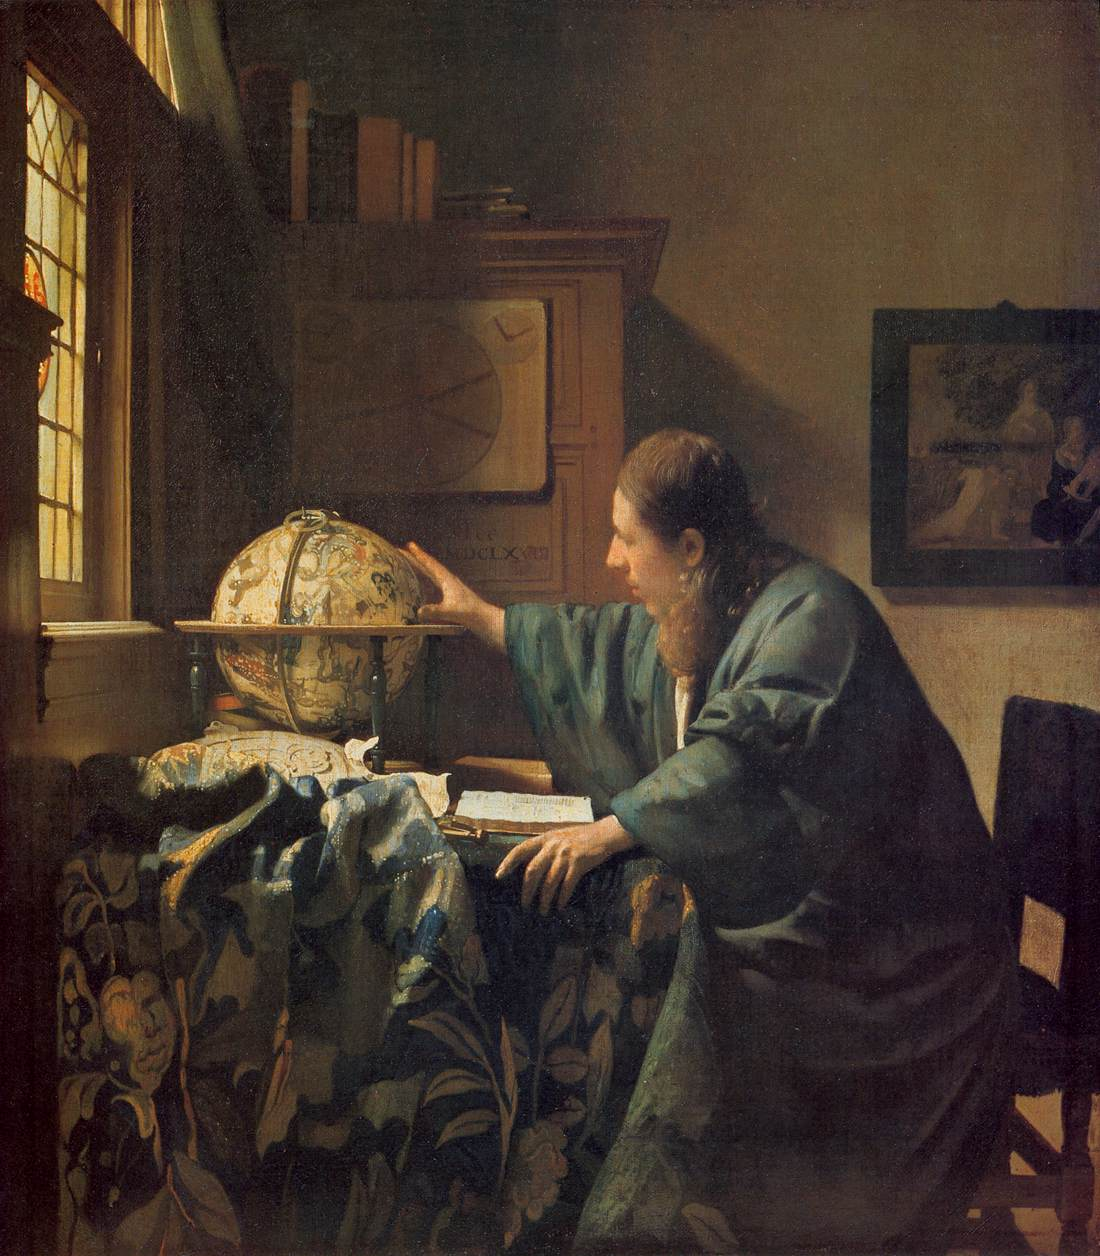 The Astronomer by Johannes Vermeer.